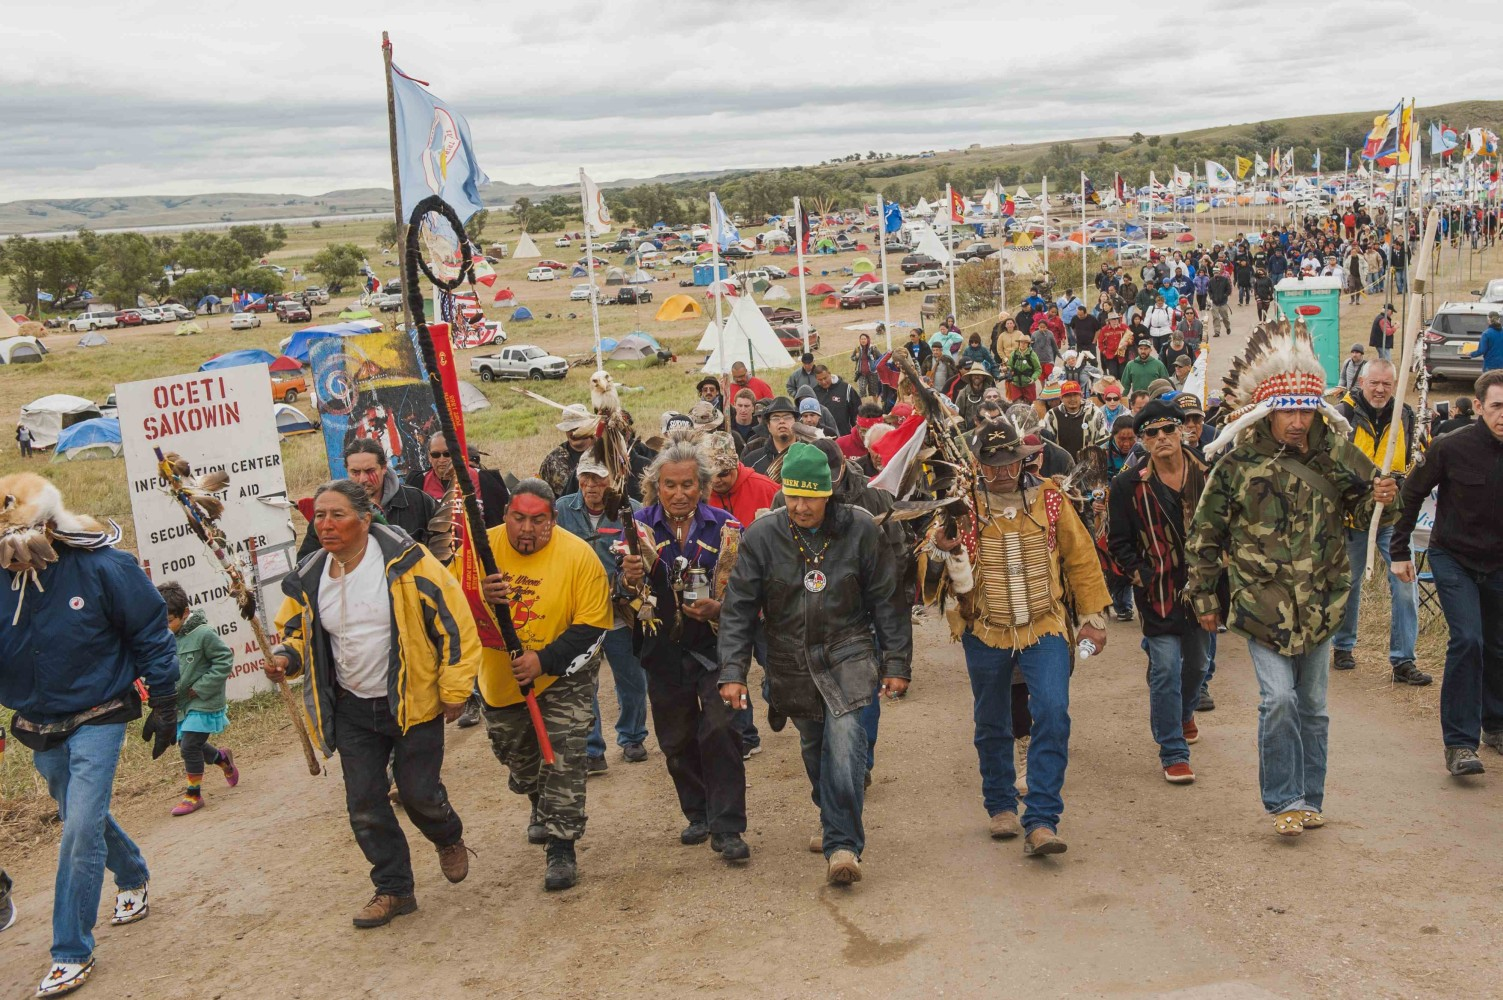 Army Corps wants more study on Dakota Access oil pipeline